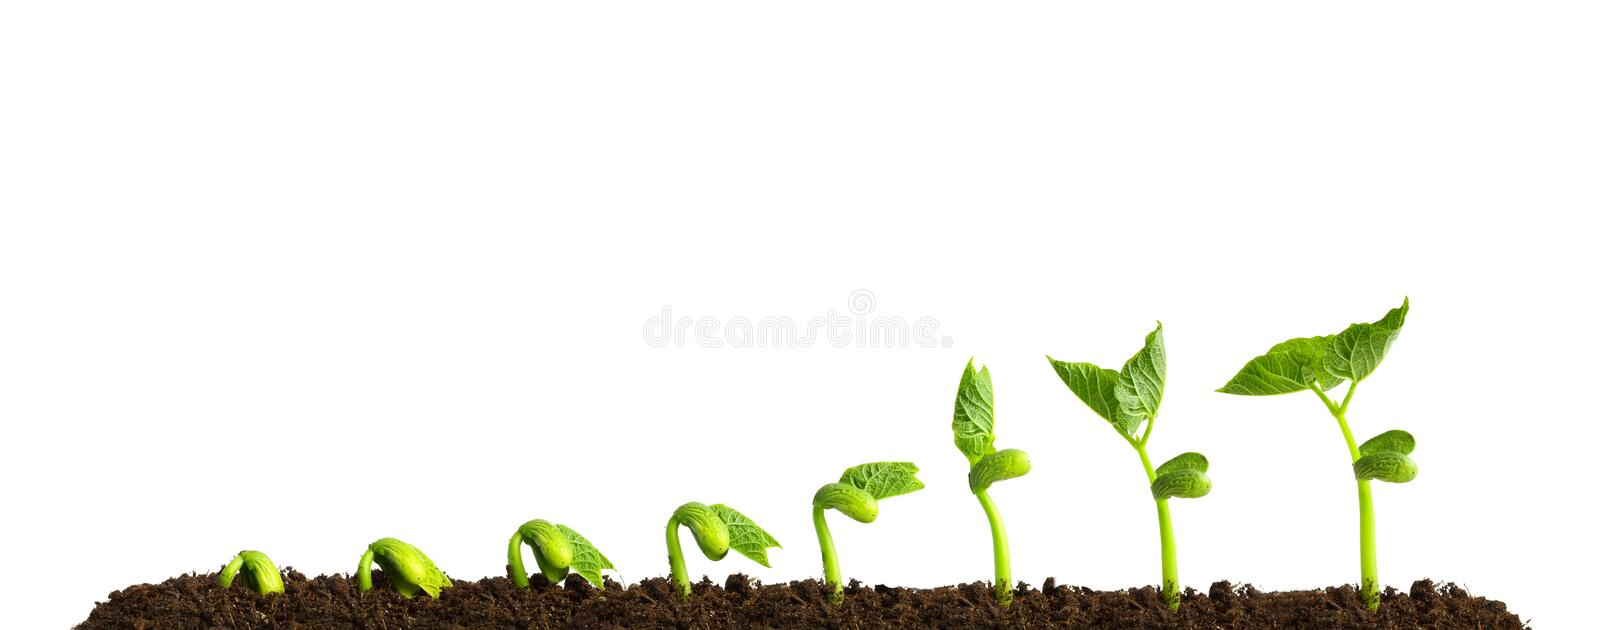 Growing plant in soil royalty free stock images